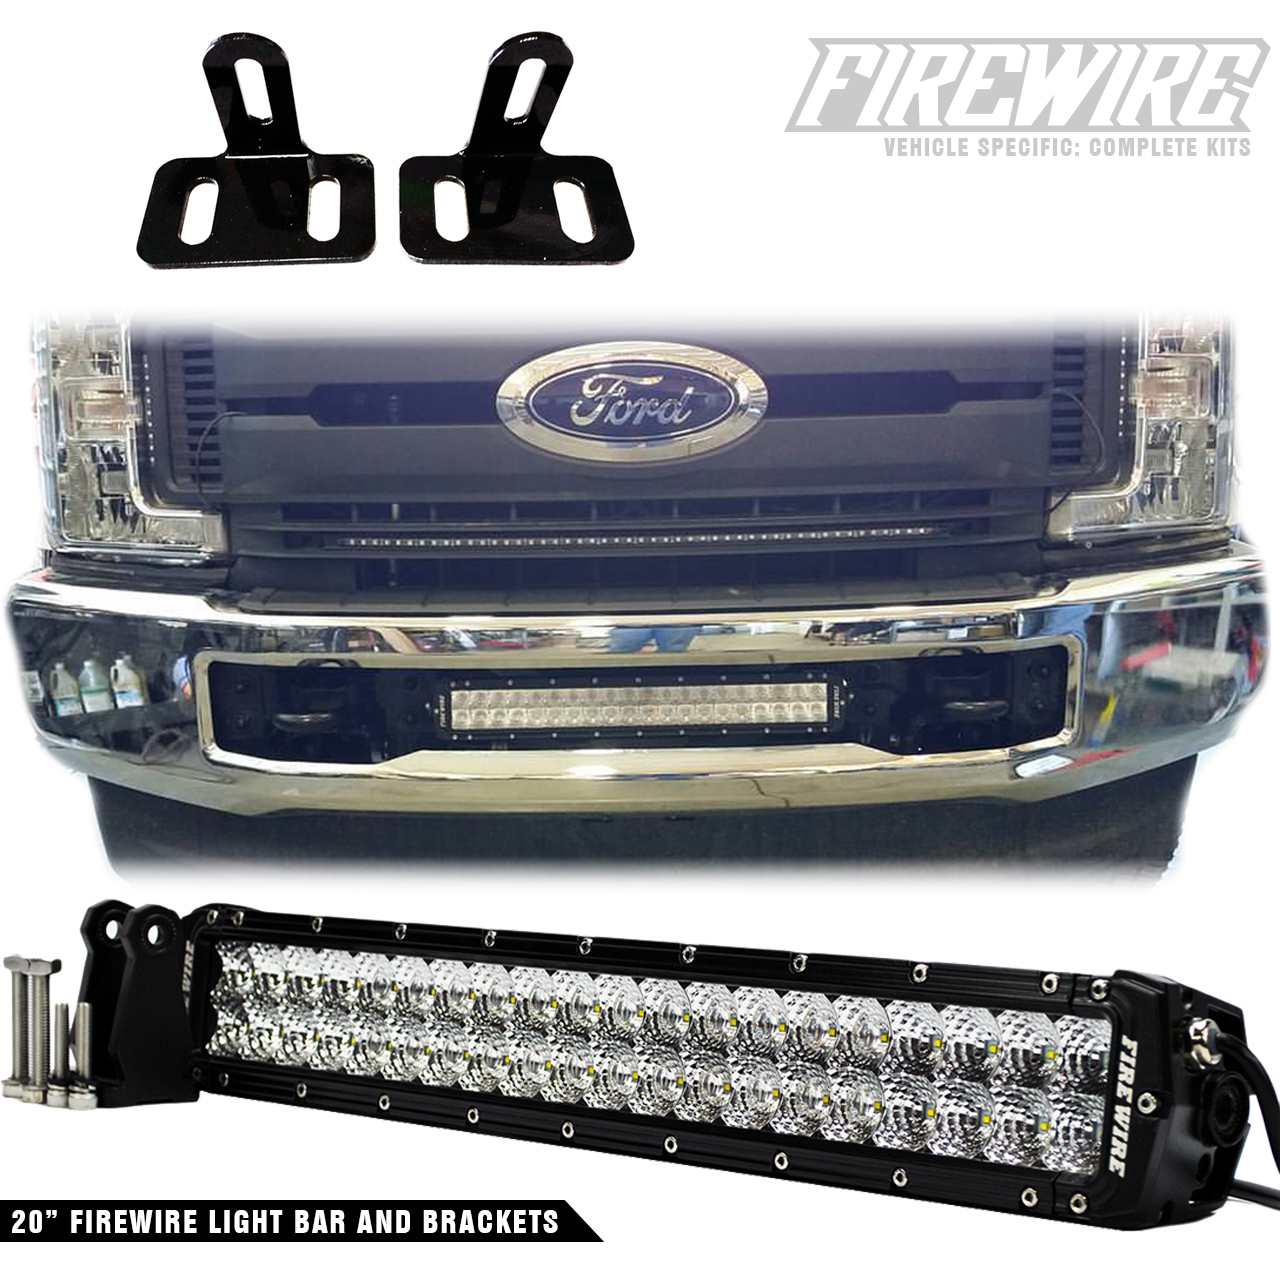 2017 ford super duty bumper light bar kit firewire leds firewire led would like to introduce our newest product the 2017 ford super duty bumper light bar kit this light bar kit includes a 20 inch light bar and mozeypictures